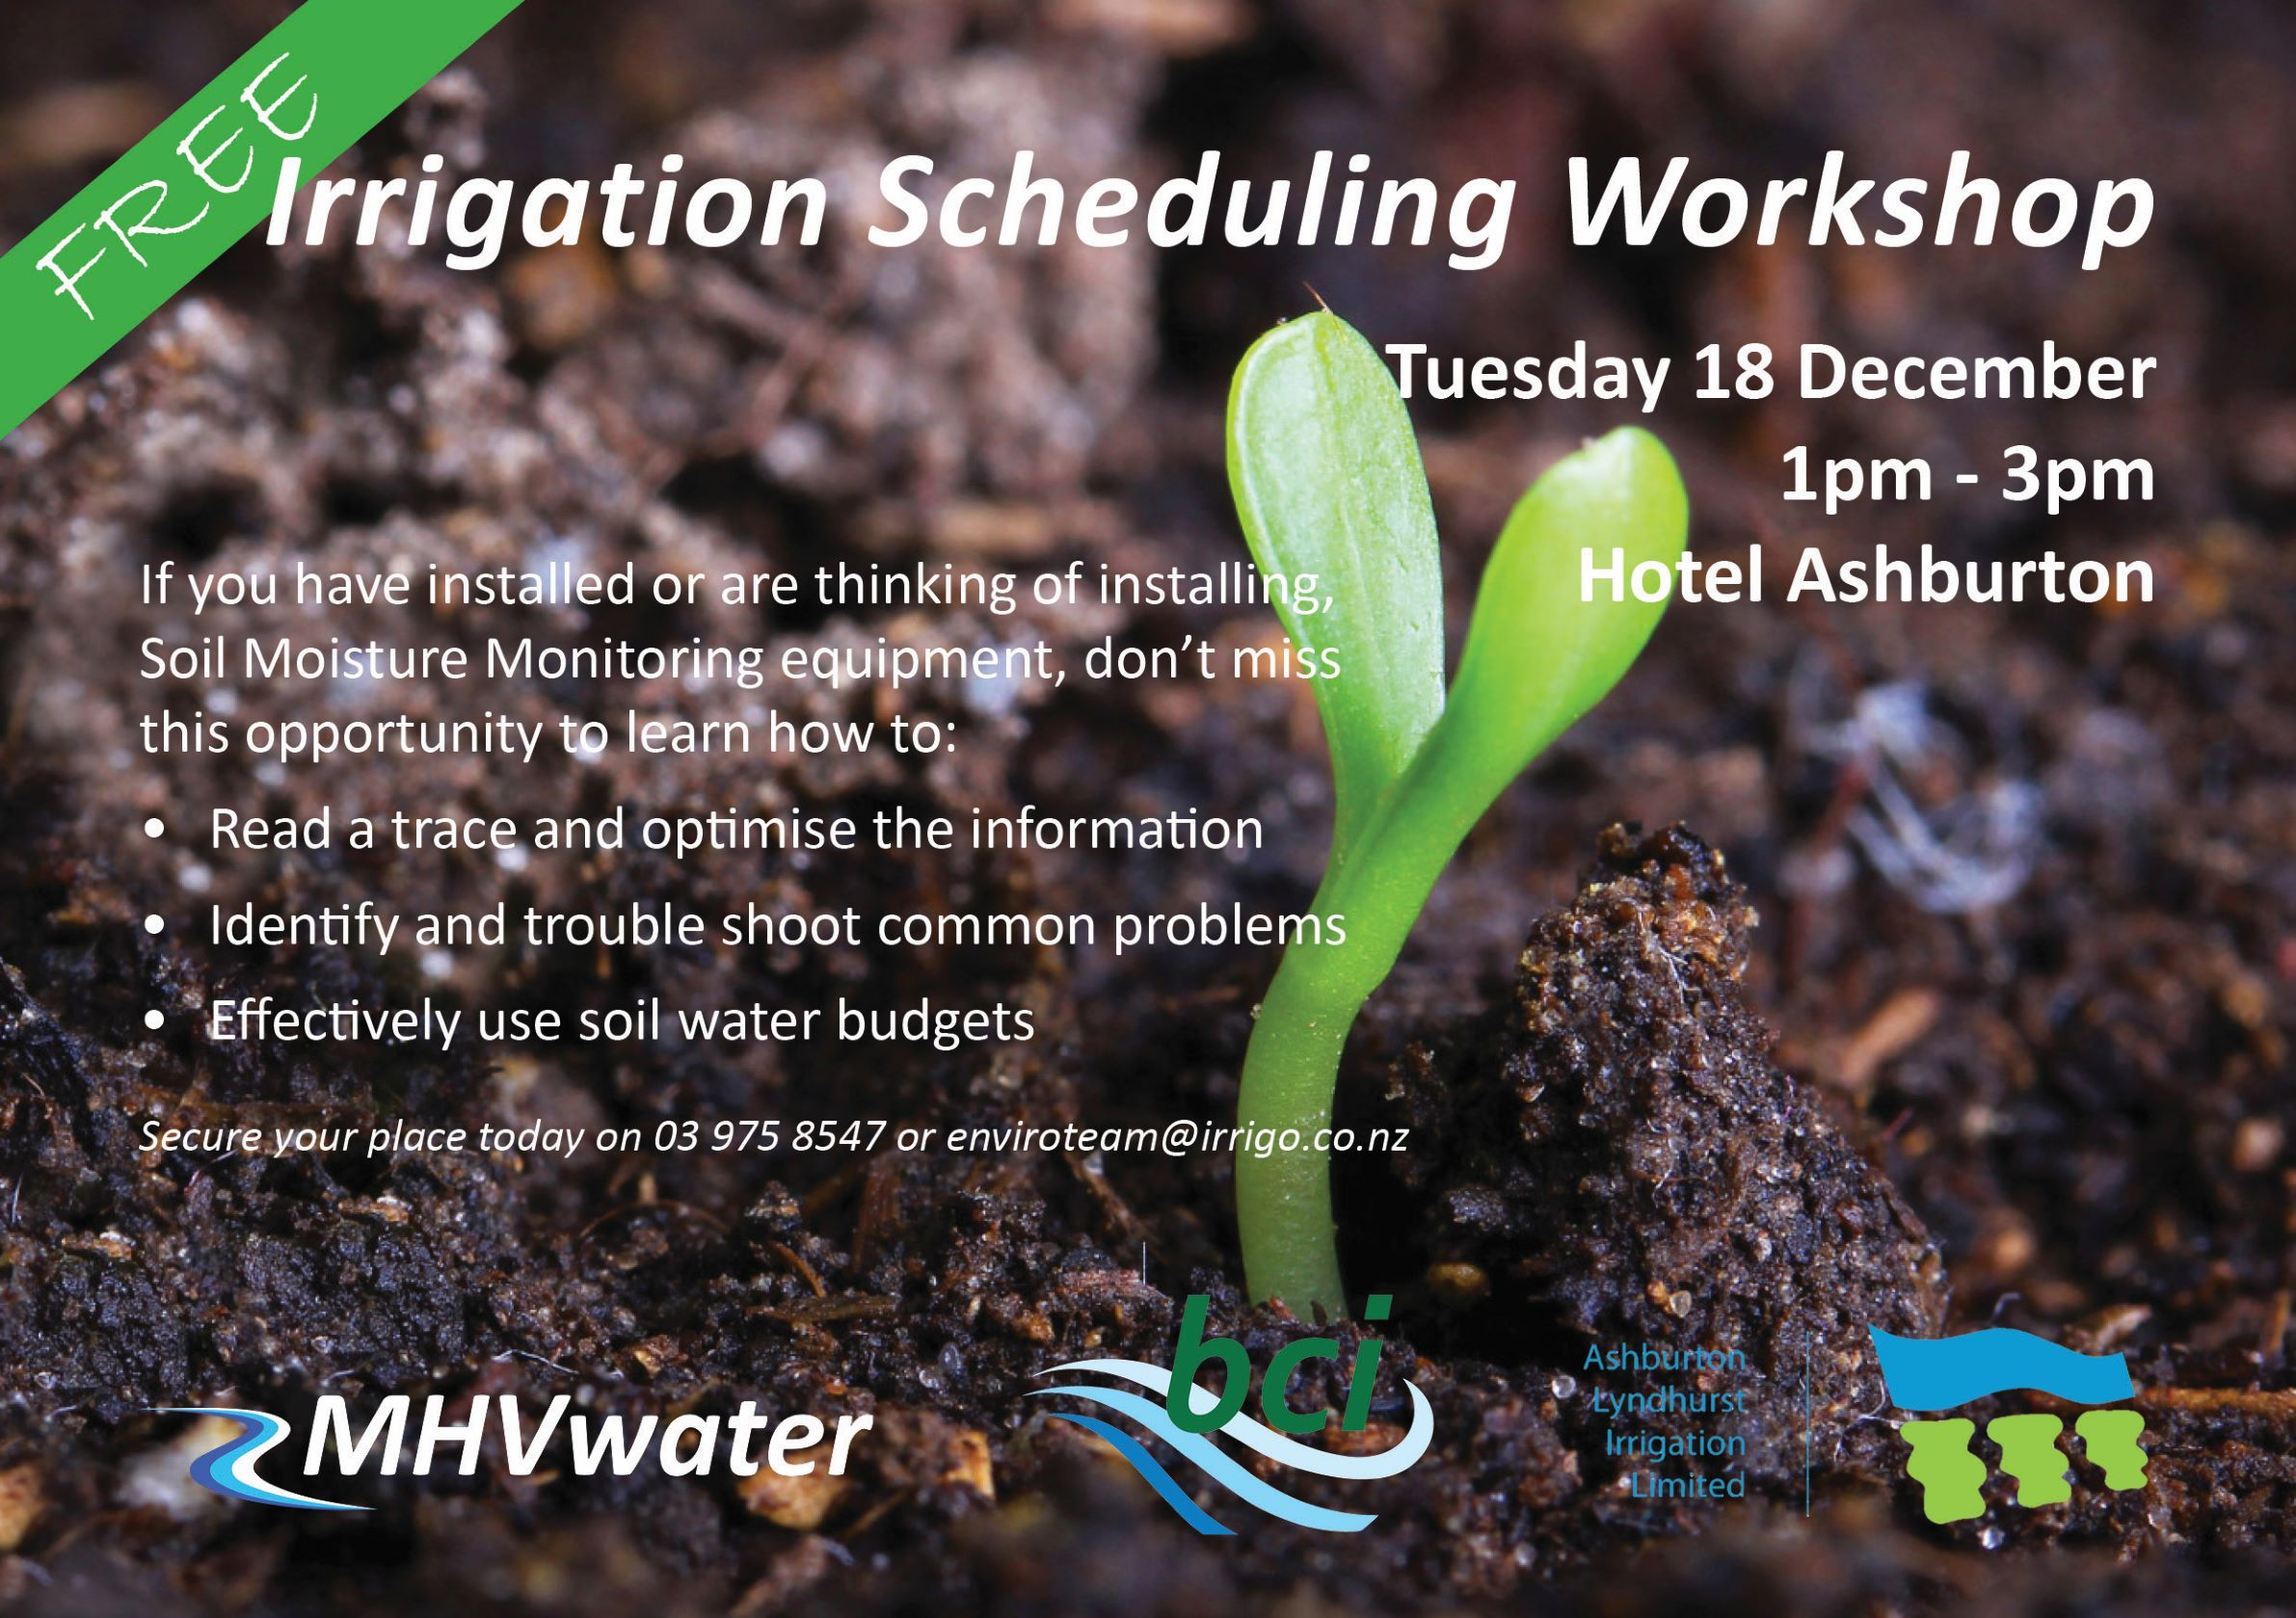 Irrigation scheduling workshop